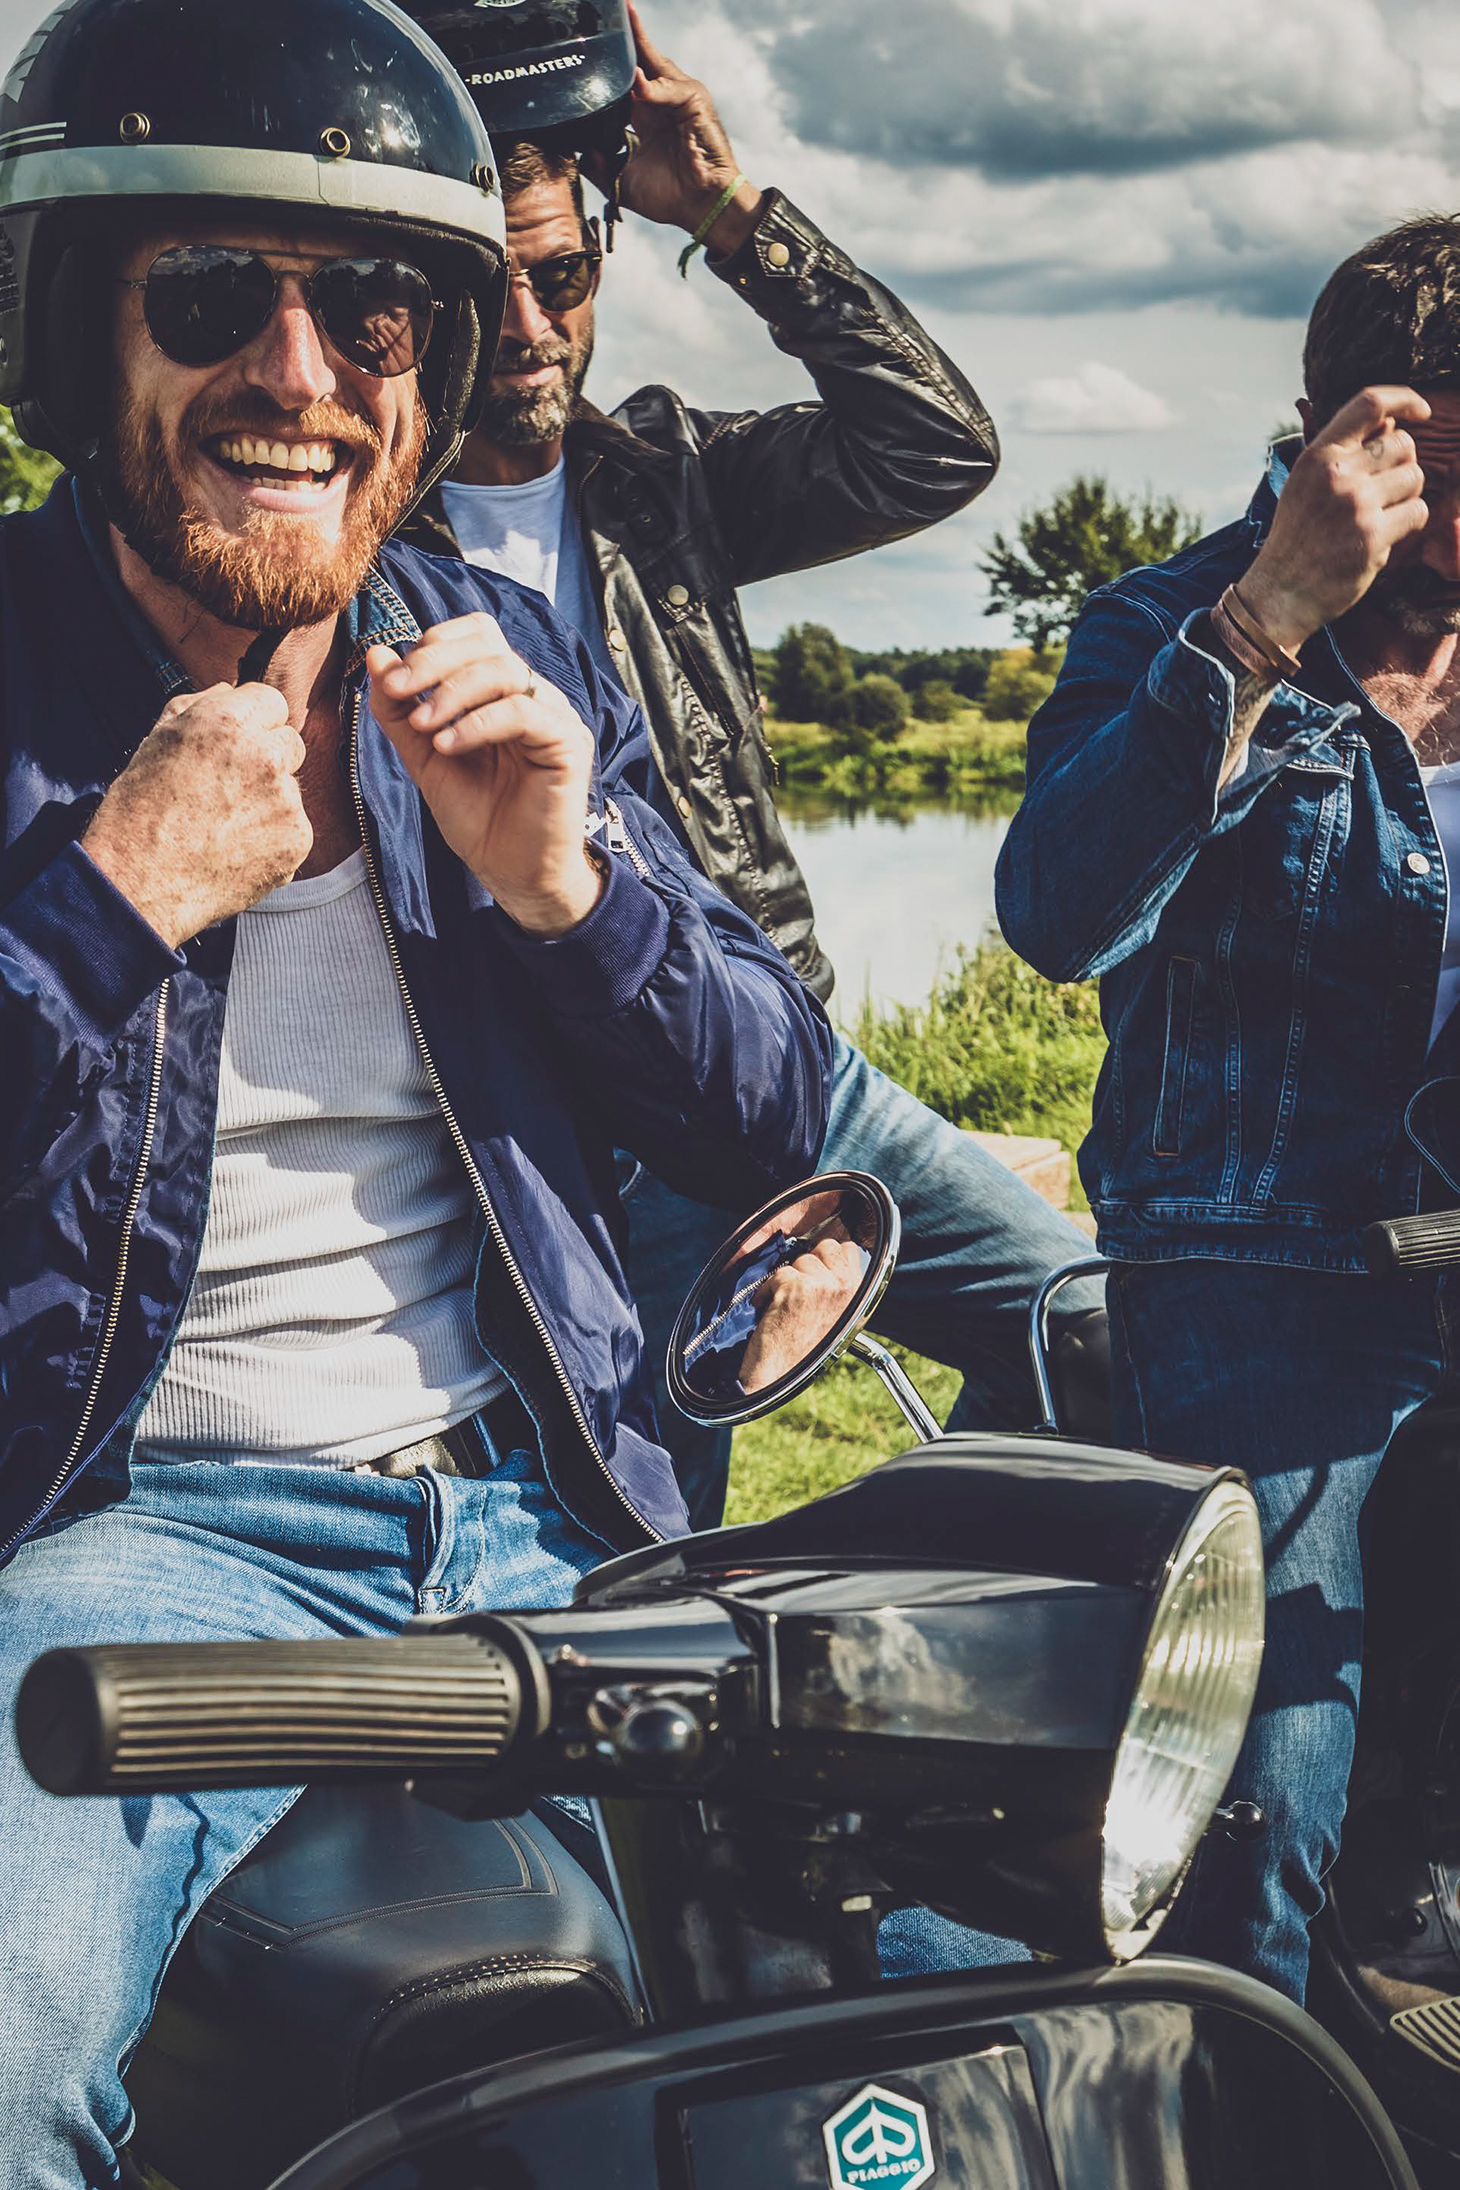 photography motorcycles men beard nature lake swimmng jeans summer